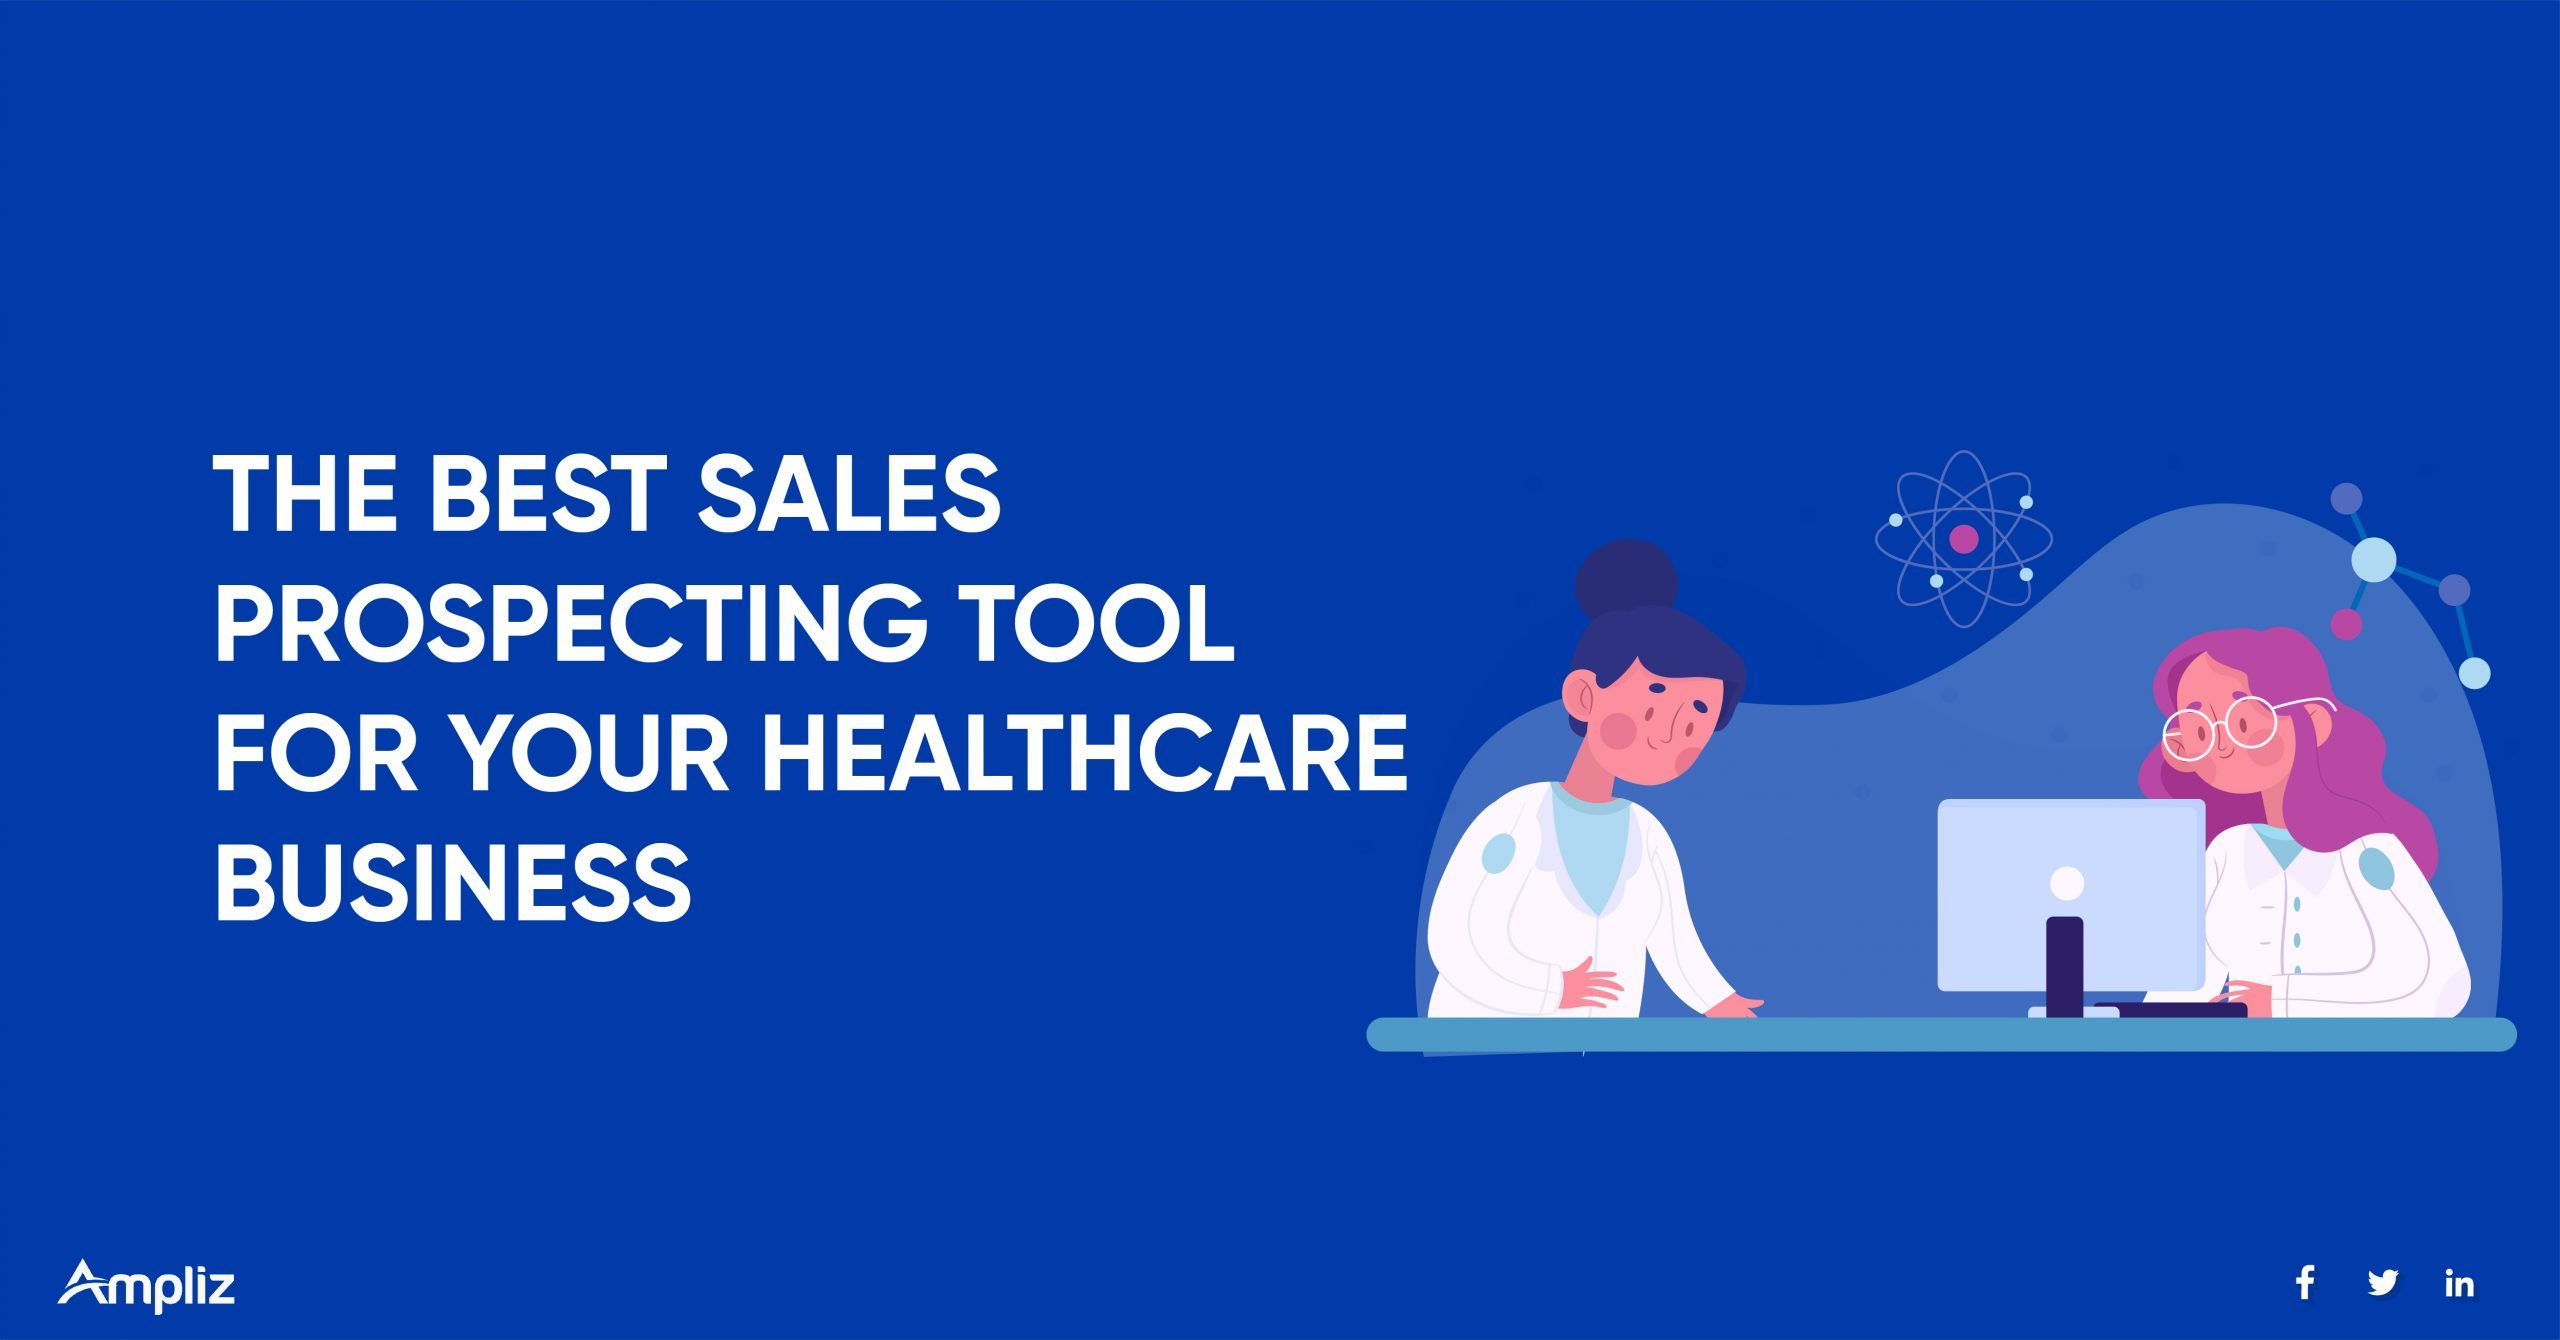 THE-BEST-SALES-PROSPECTING-TOOL-FOR-YOUR-HEALTHCARE-BUSINESS-scaled.jpg